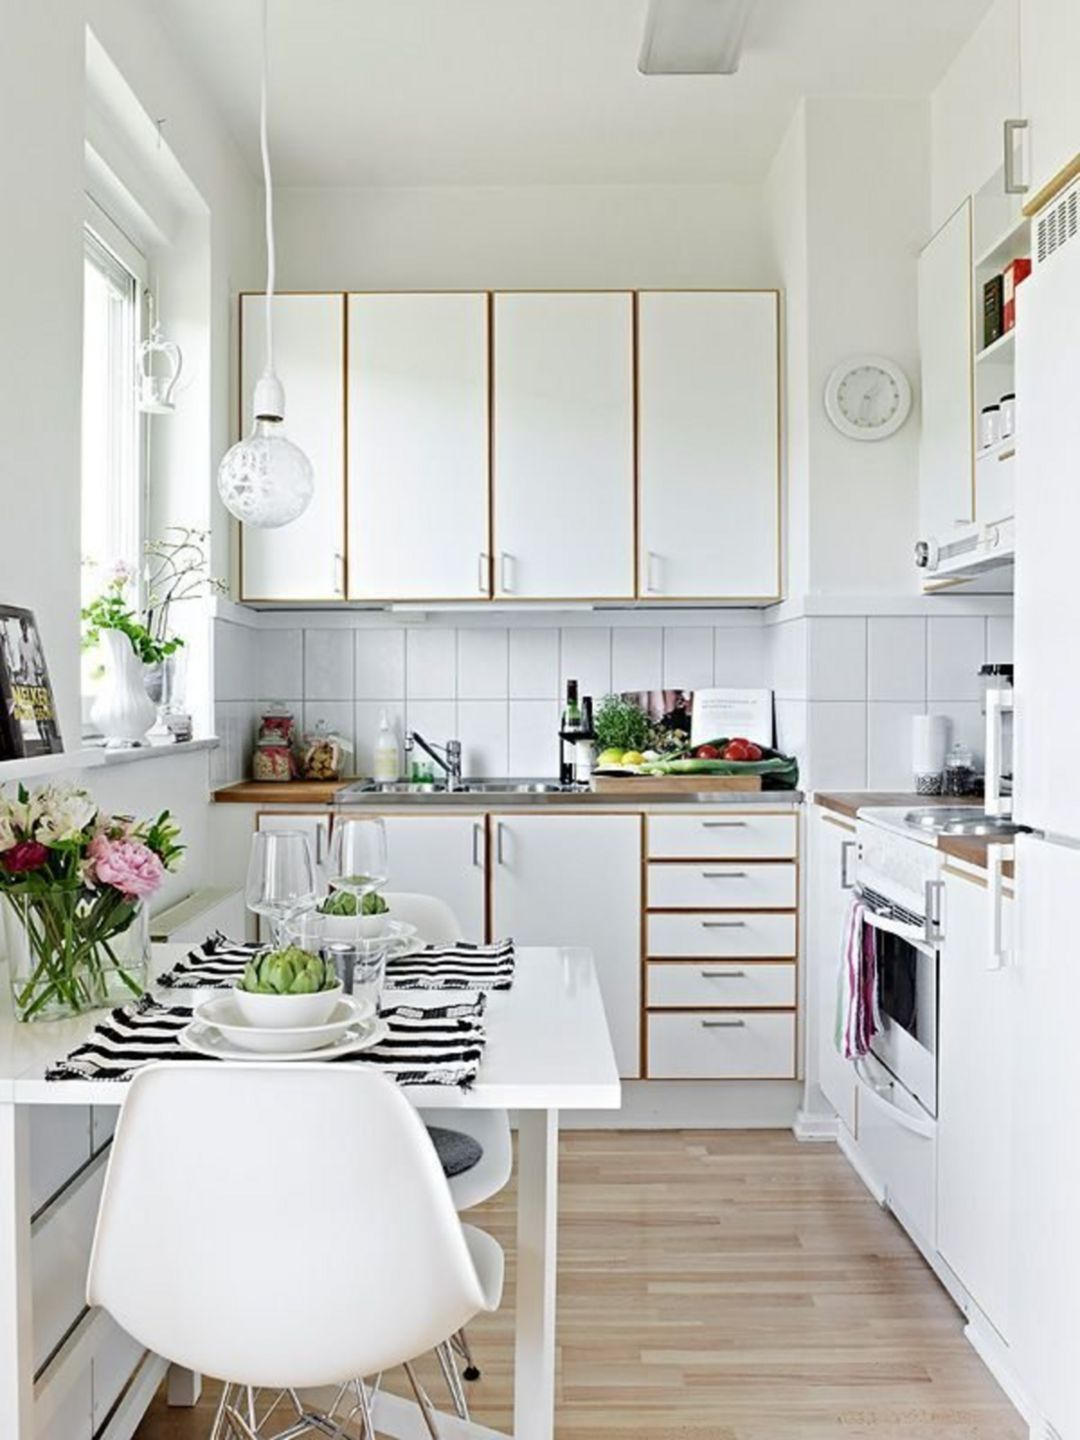 35 Outstanding Small Kitchen Studio Designs For Comfort ... on pink girls bedroom design ideas, small functional kitchen ideas, built in kitchen desk workstation ideas, small ikea kitchen cabinets, small kitchen sink dishwasher ideas, small apartment kitchen solutions, small kitchen makeovers, small elegant kitchen cabinets, basement kitchen cabinet ideas, small apartment kitchen backsplash ideas, small apartment kitchen decorating, small kitchen sets for small apartment, small apartment home decor ideas, small modern bathroom design idea, small kitchen storage ideas, small galley kitchen storage, small bathroom design ideas bathroom, small apartment kitchen color, small kitchen countertop decorating ideas, modern office meeting room interior design ideas,